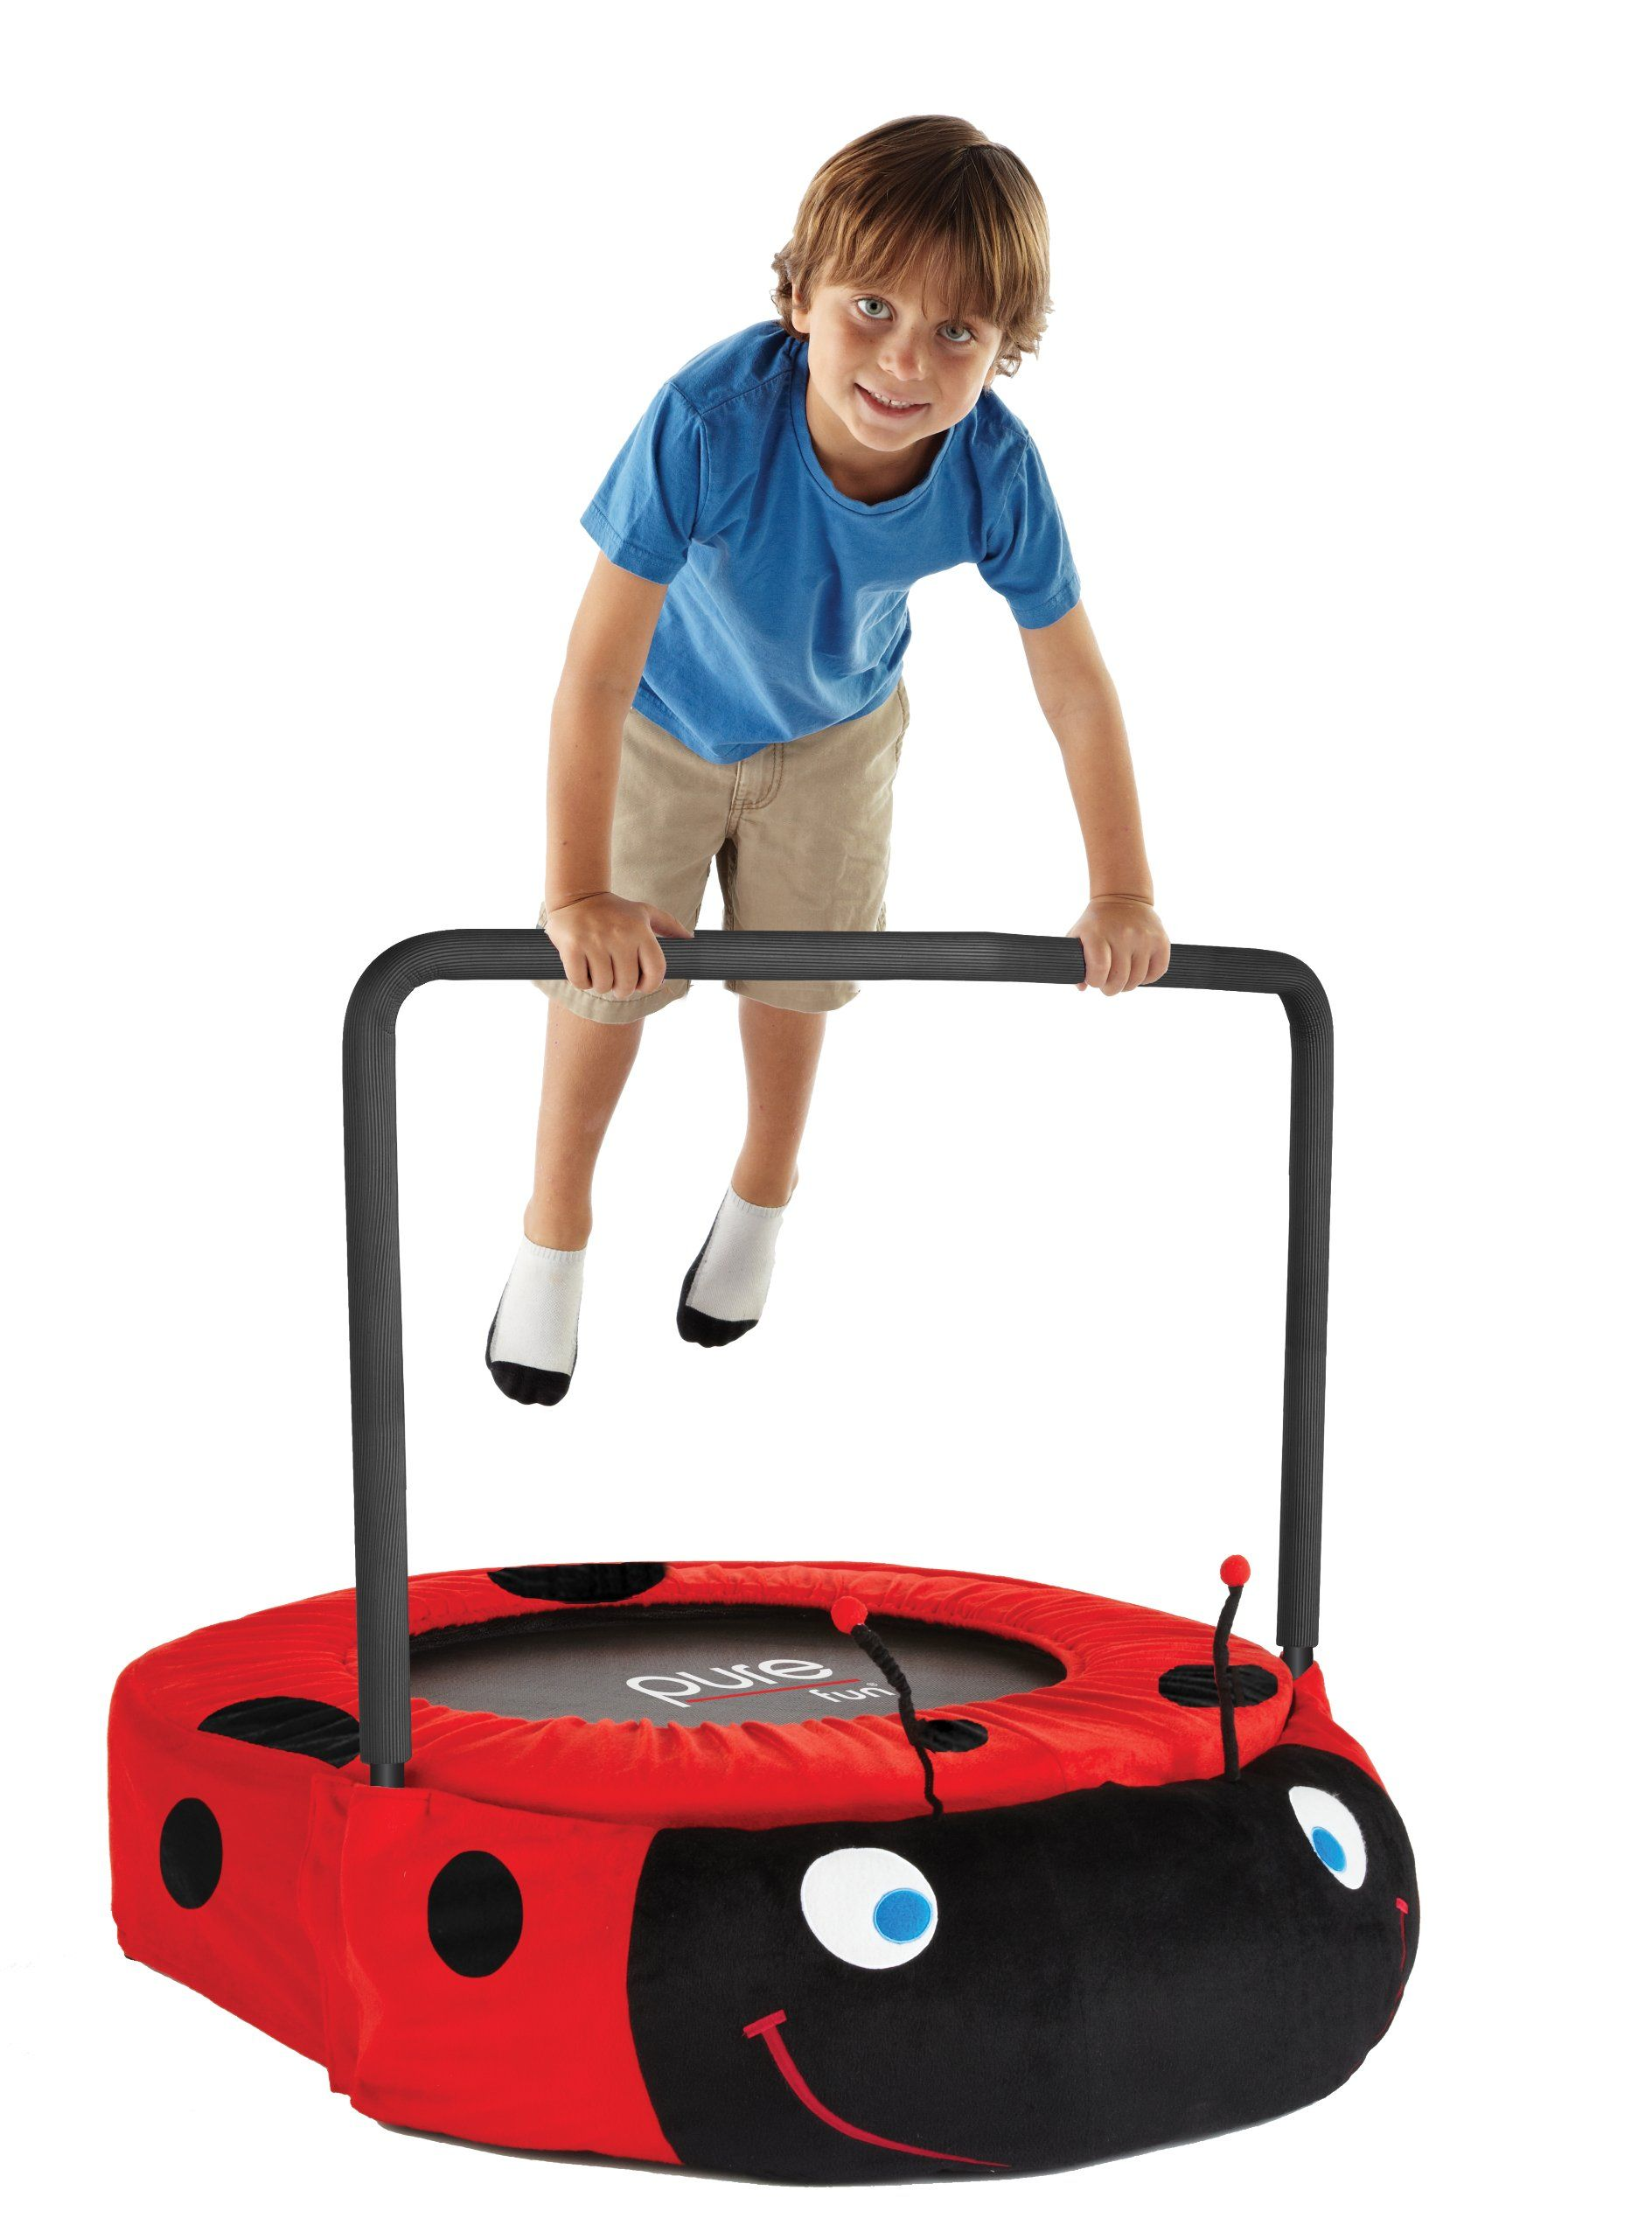 Toys For Boys Age 3 5 : Best gifts and toys for year old boys gift